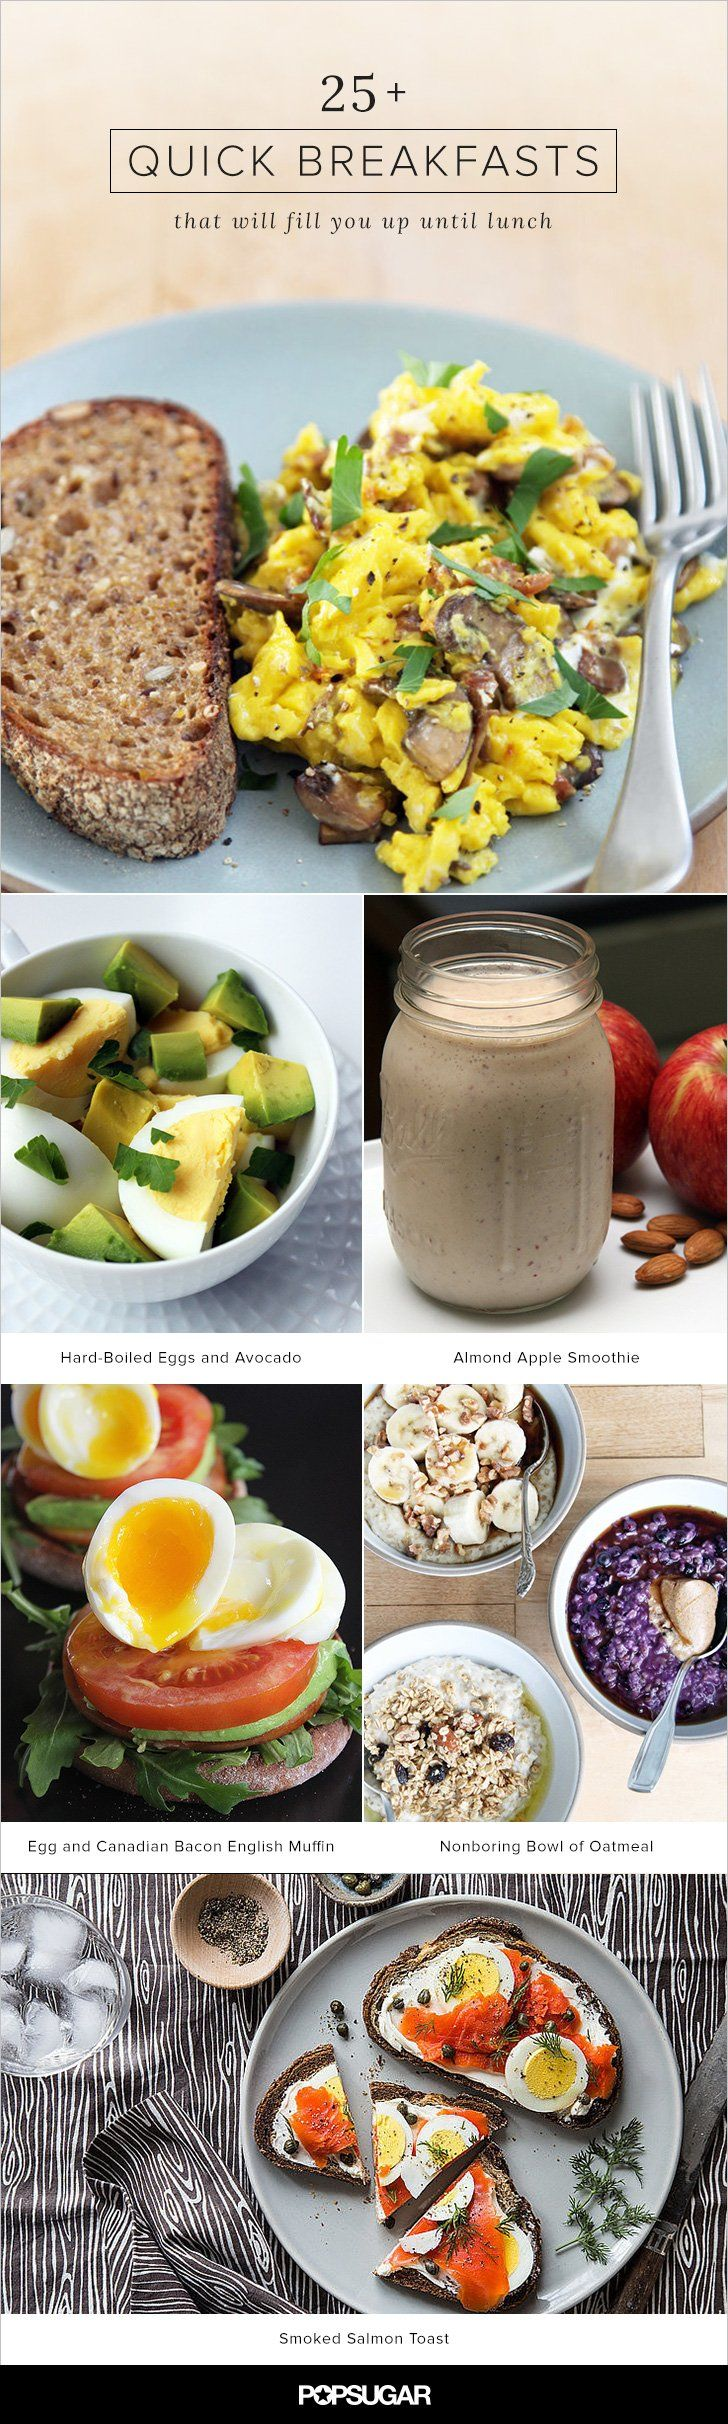 26 delicious recipes that are quick, easy, and filling. It's possible to make a good breakfast without getting up any earlier.